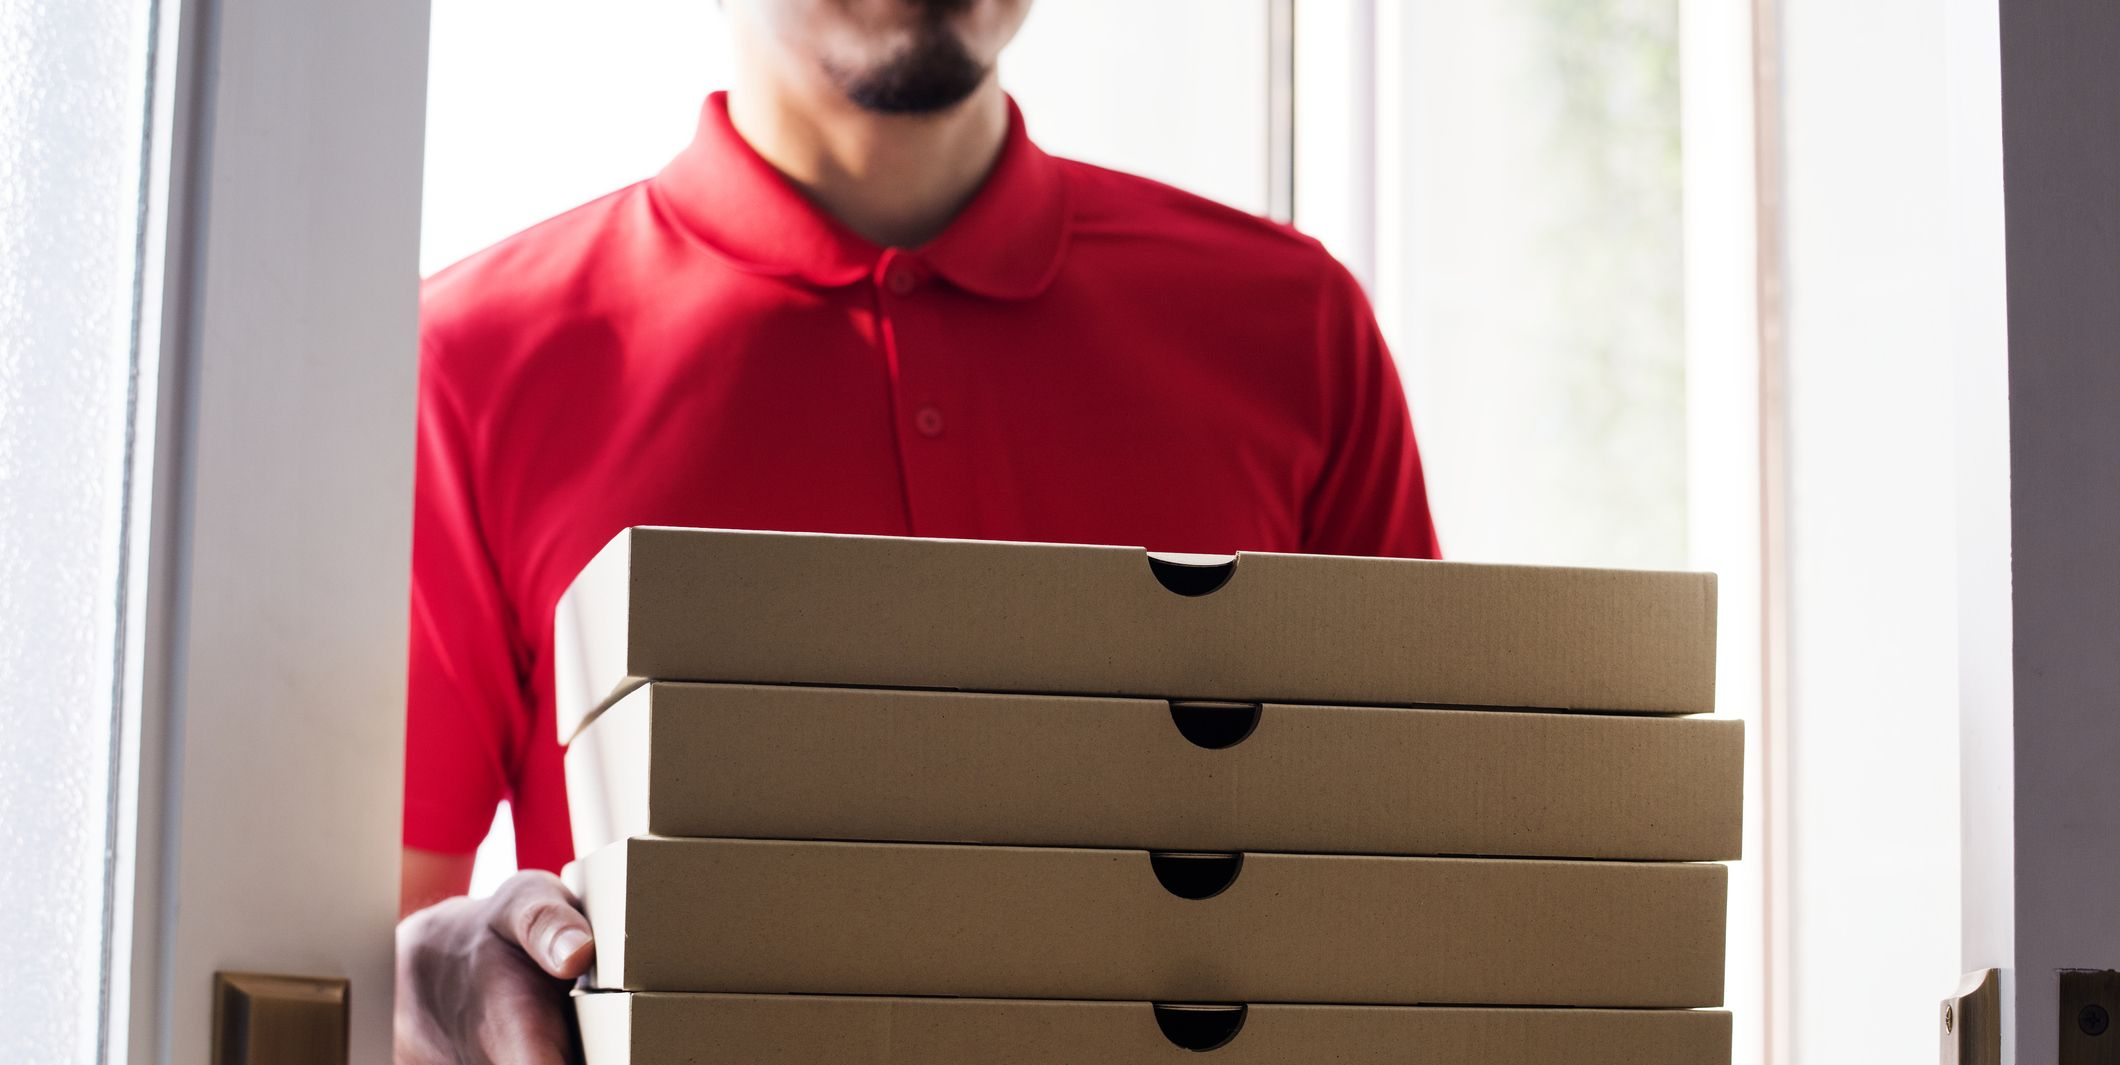 Food Delivery Services Offering 'Non-Contact Delivery' Because Of Coronavirus